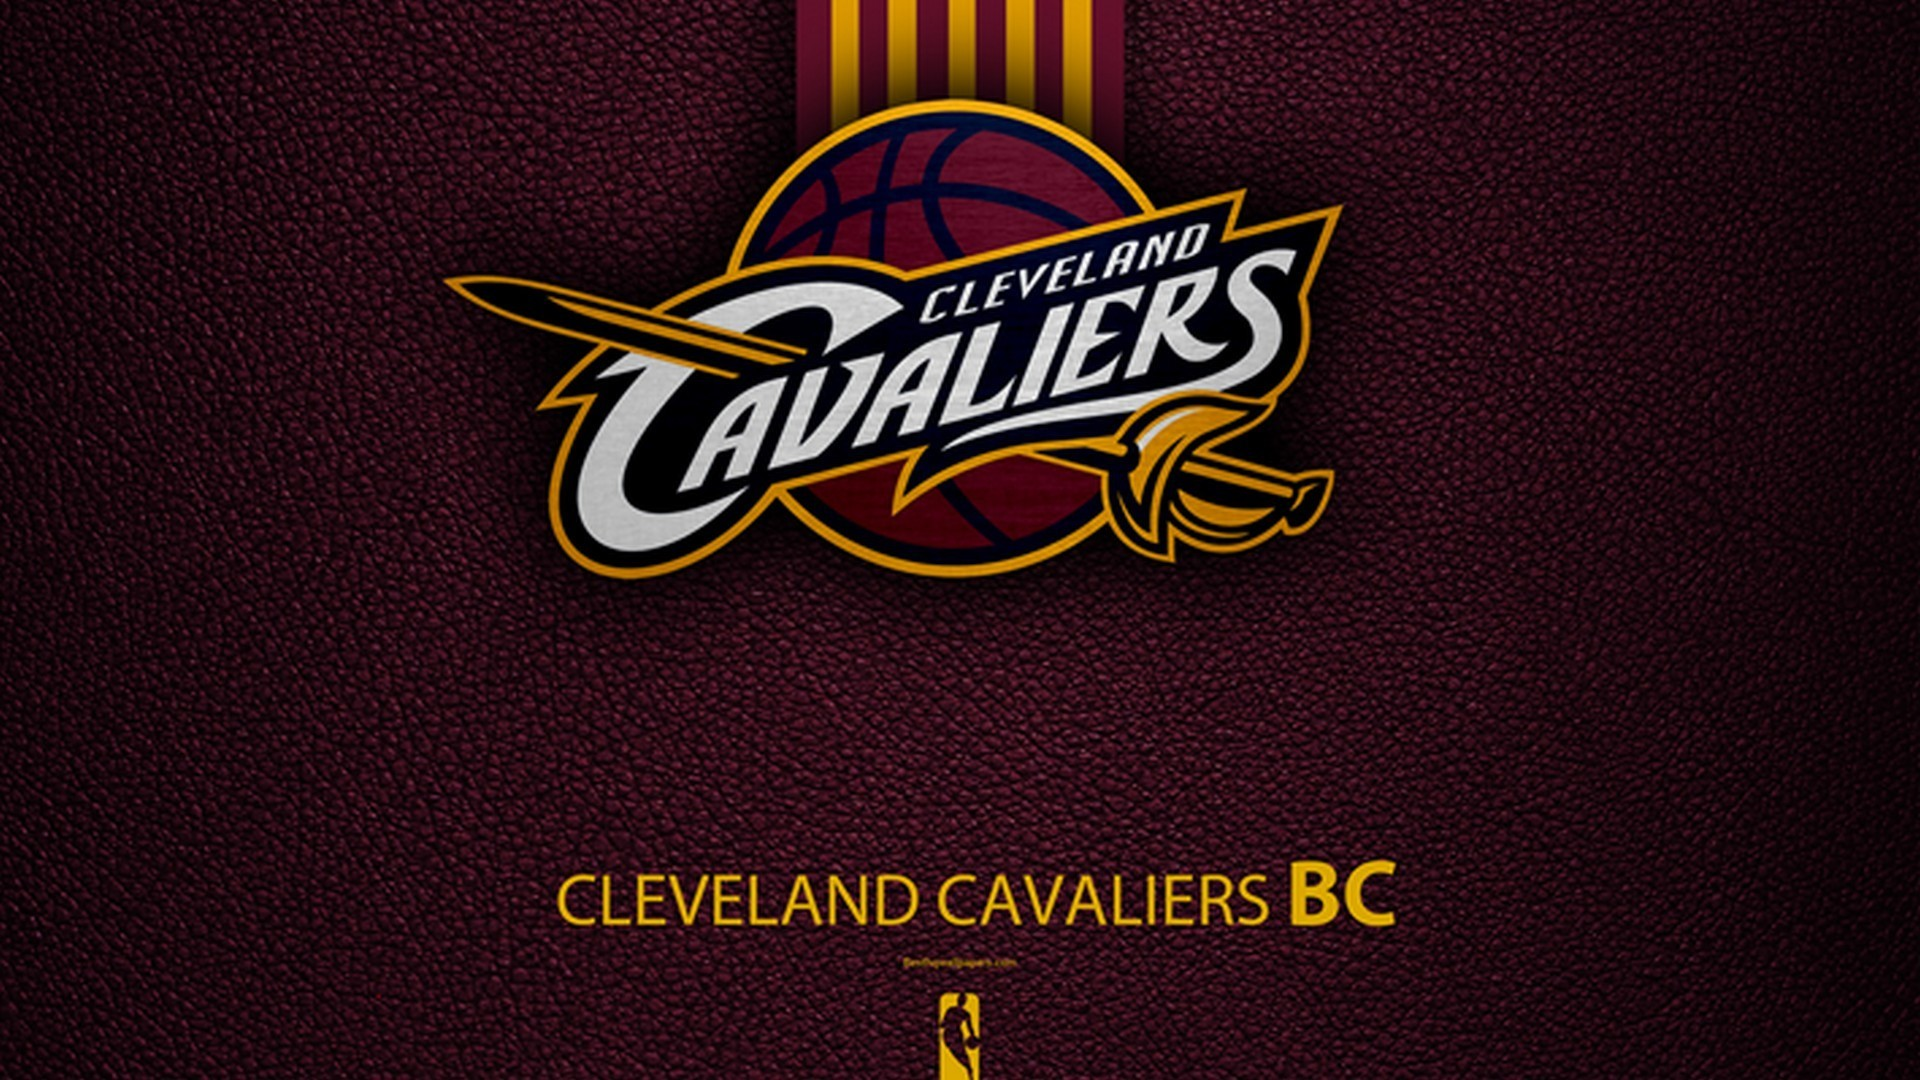 Res: 1920x1080, Source · Wallpapers HD Cleveland Cavaliers 2018 Basketball Wallpapers  Wallpapers HD Cleveland Cavaliers  Source · Utah Jazz ...